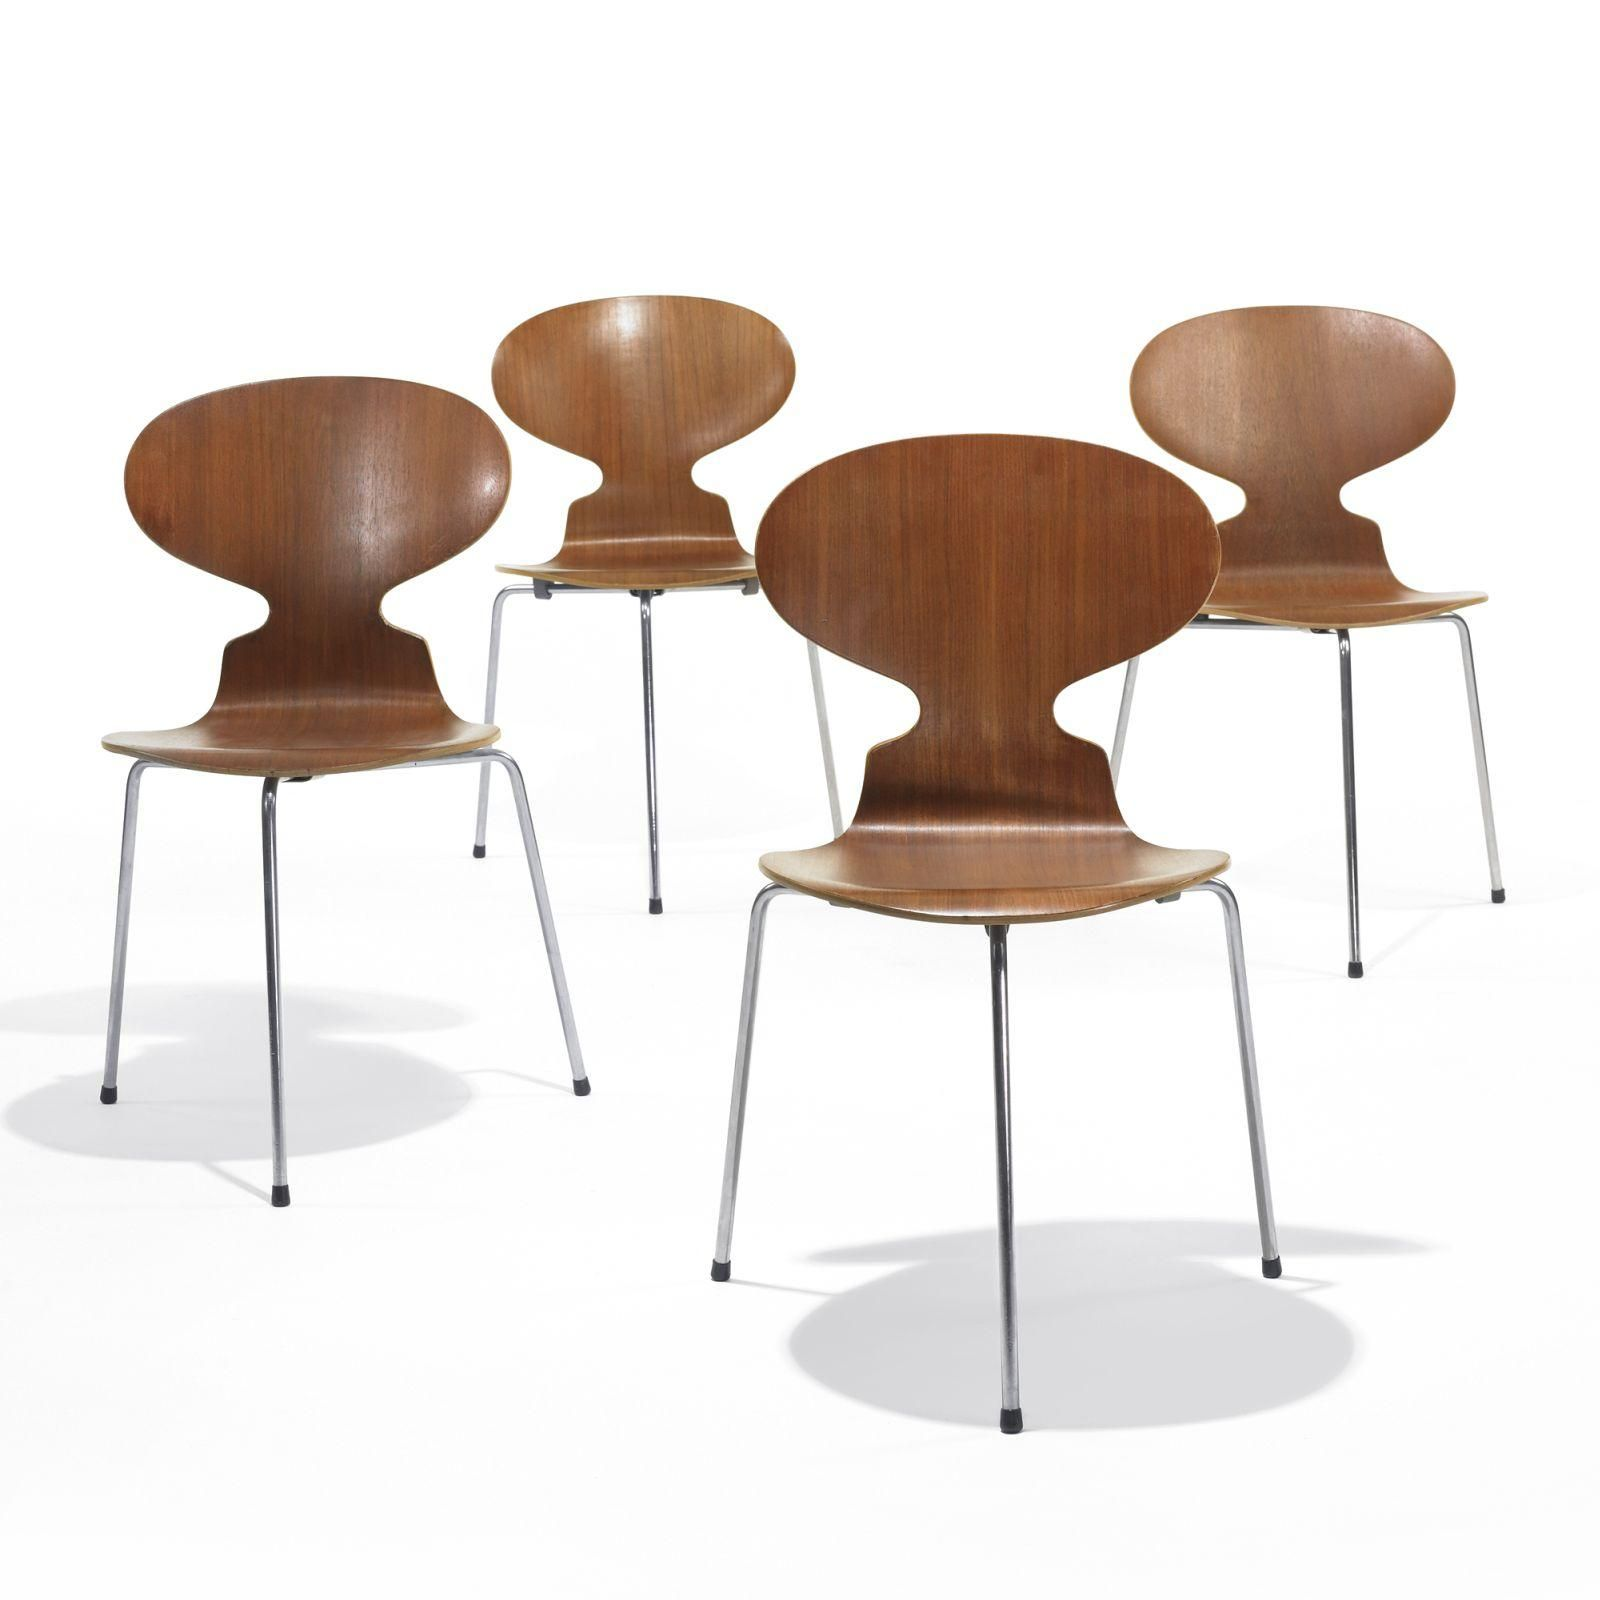 The 10 Best Mid Century Modern Chairs Part 1 Inexpensive Mid